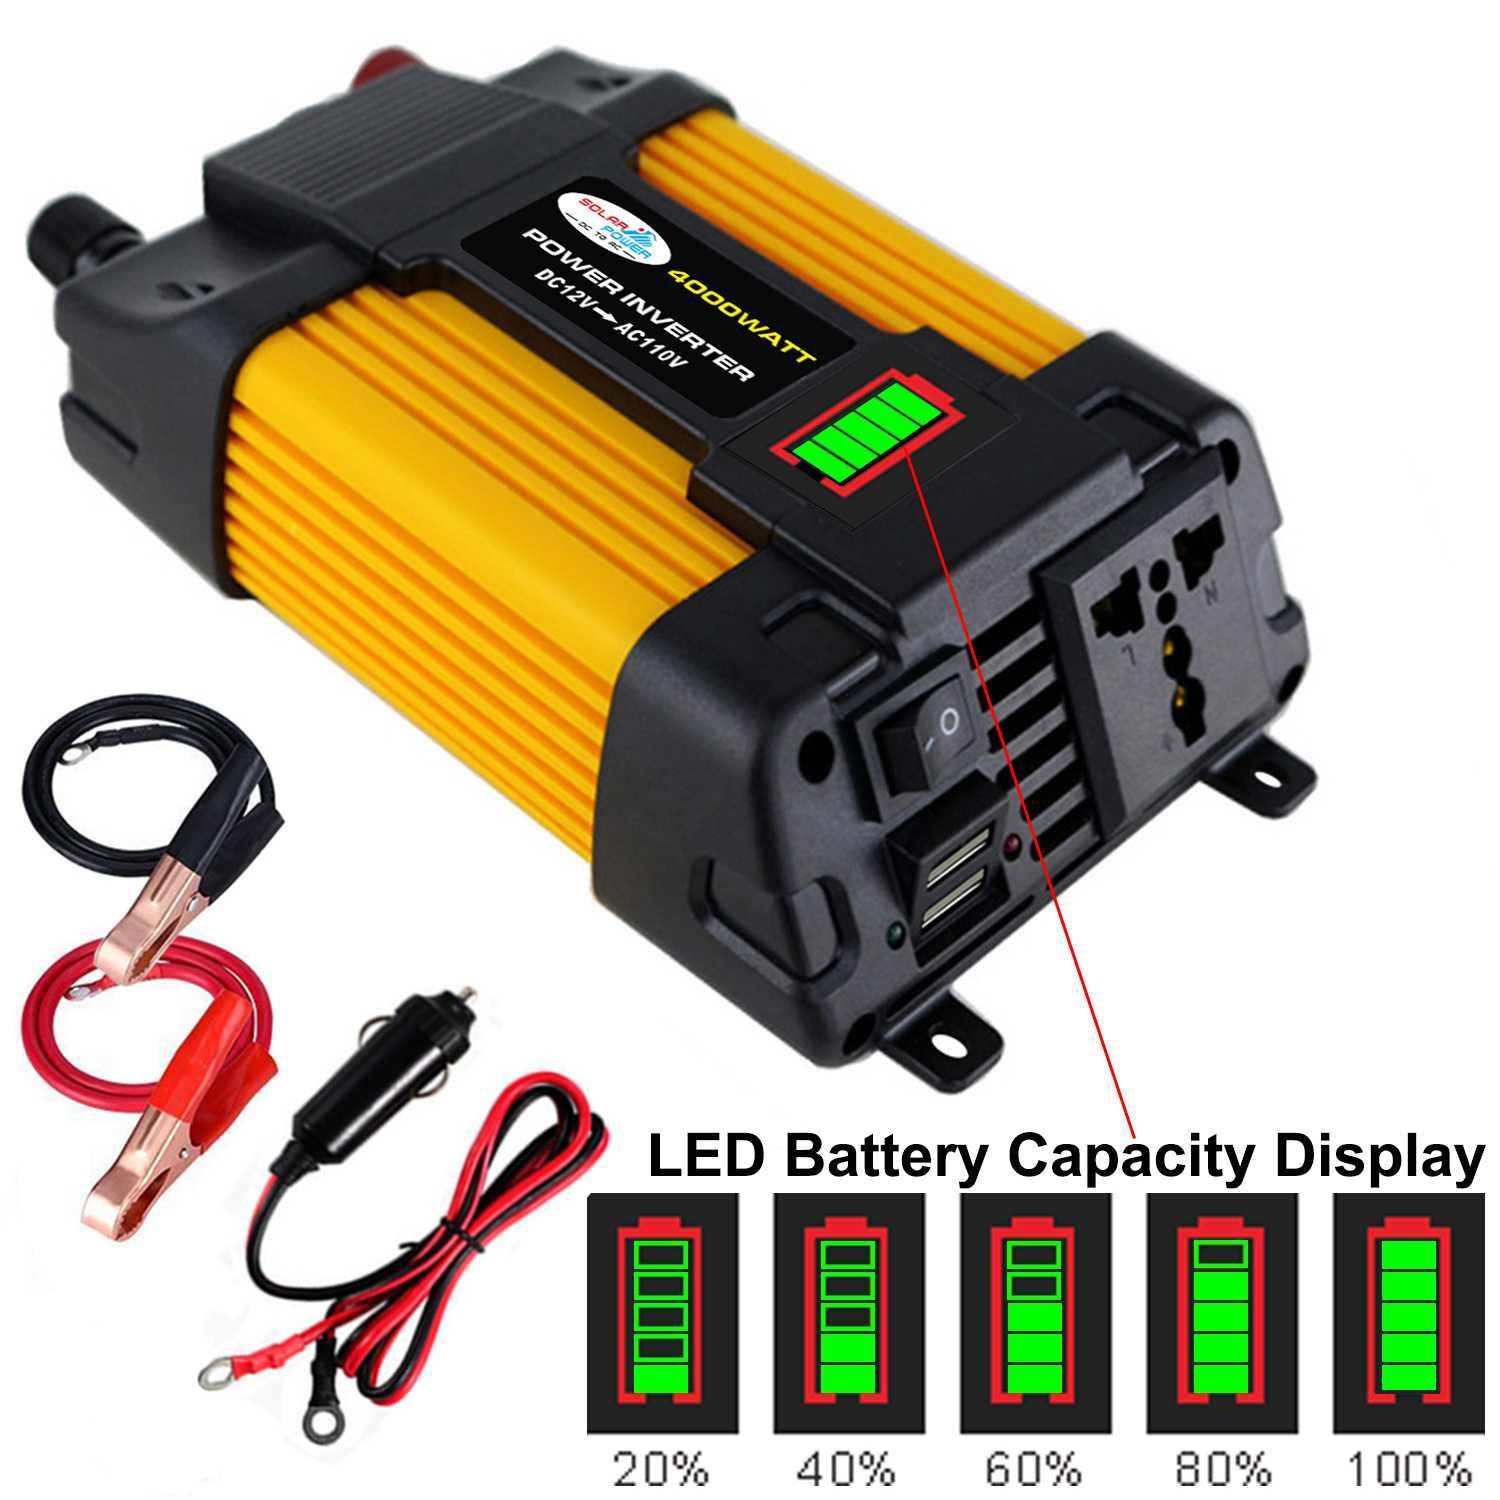 Inverter 1000W 12V untuk 110/220V Voltage Transformer Modified Sine Gelombang Inverter DC12V untuk AC 110 V/220 V CONVERTER + 2 Usb